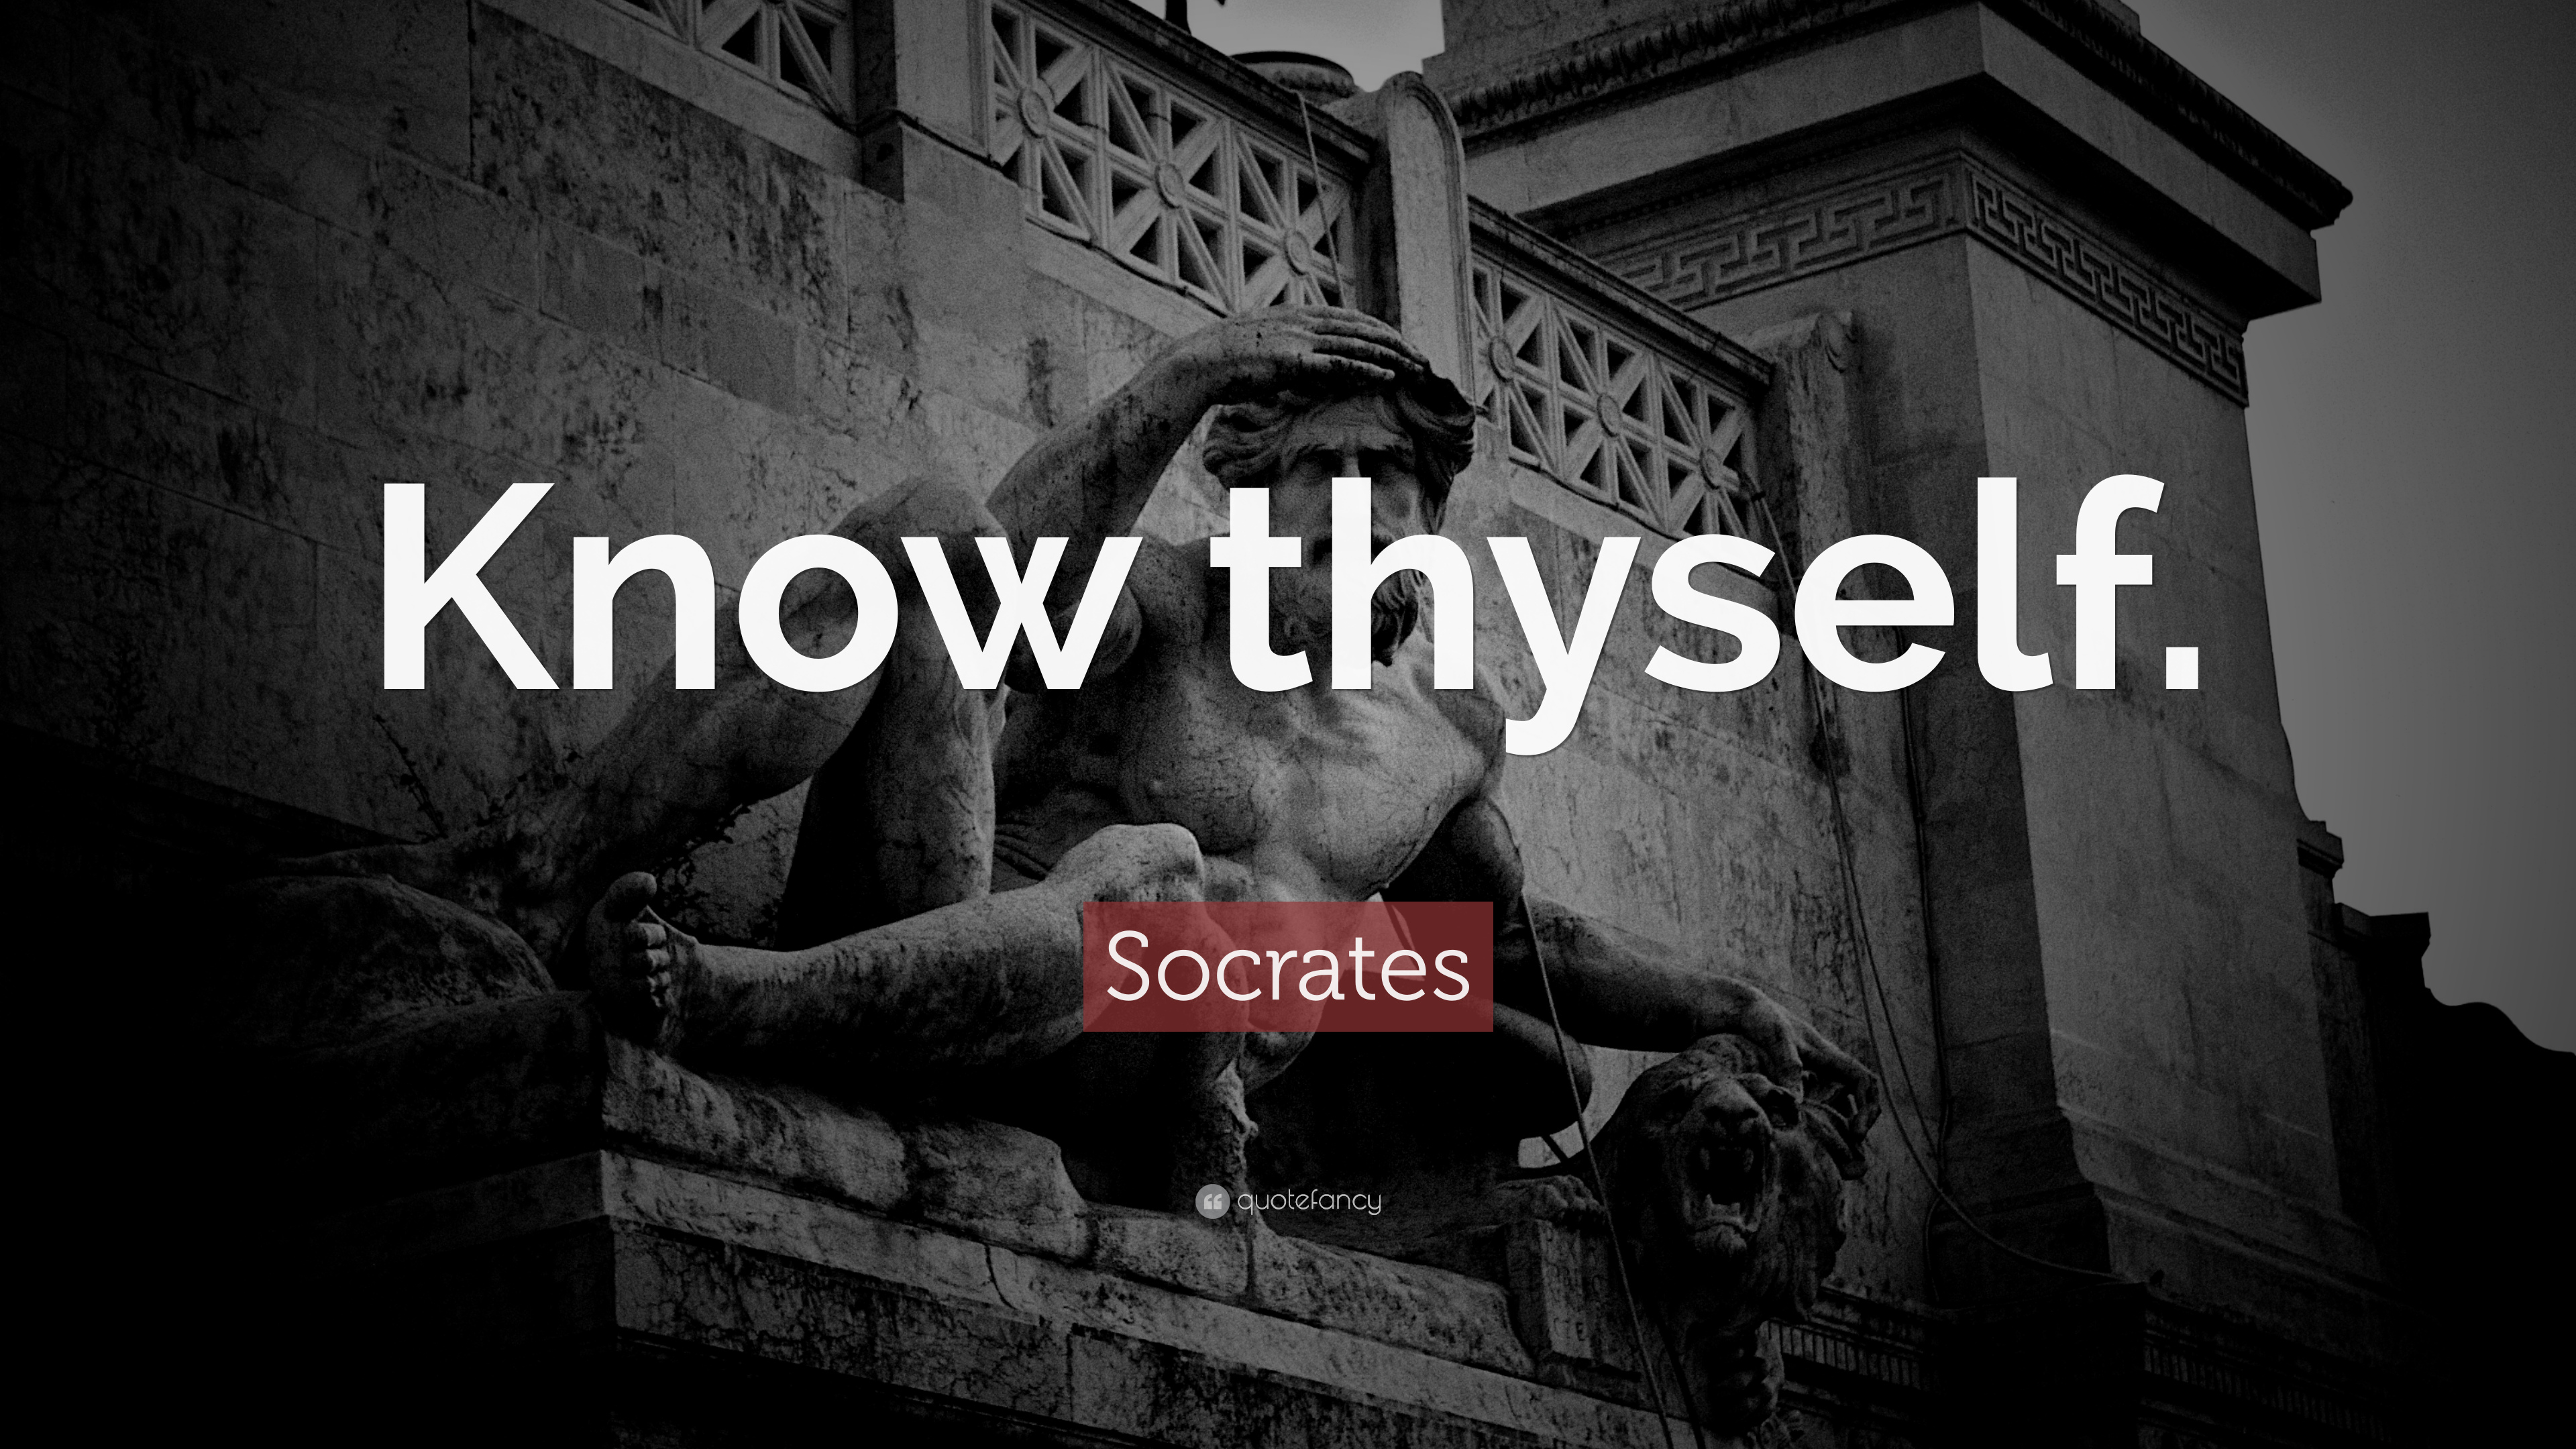 Socrates Wallpaper Quotes Socrates Quote Know Thyself 32 Wallpapers Quotefancy